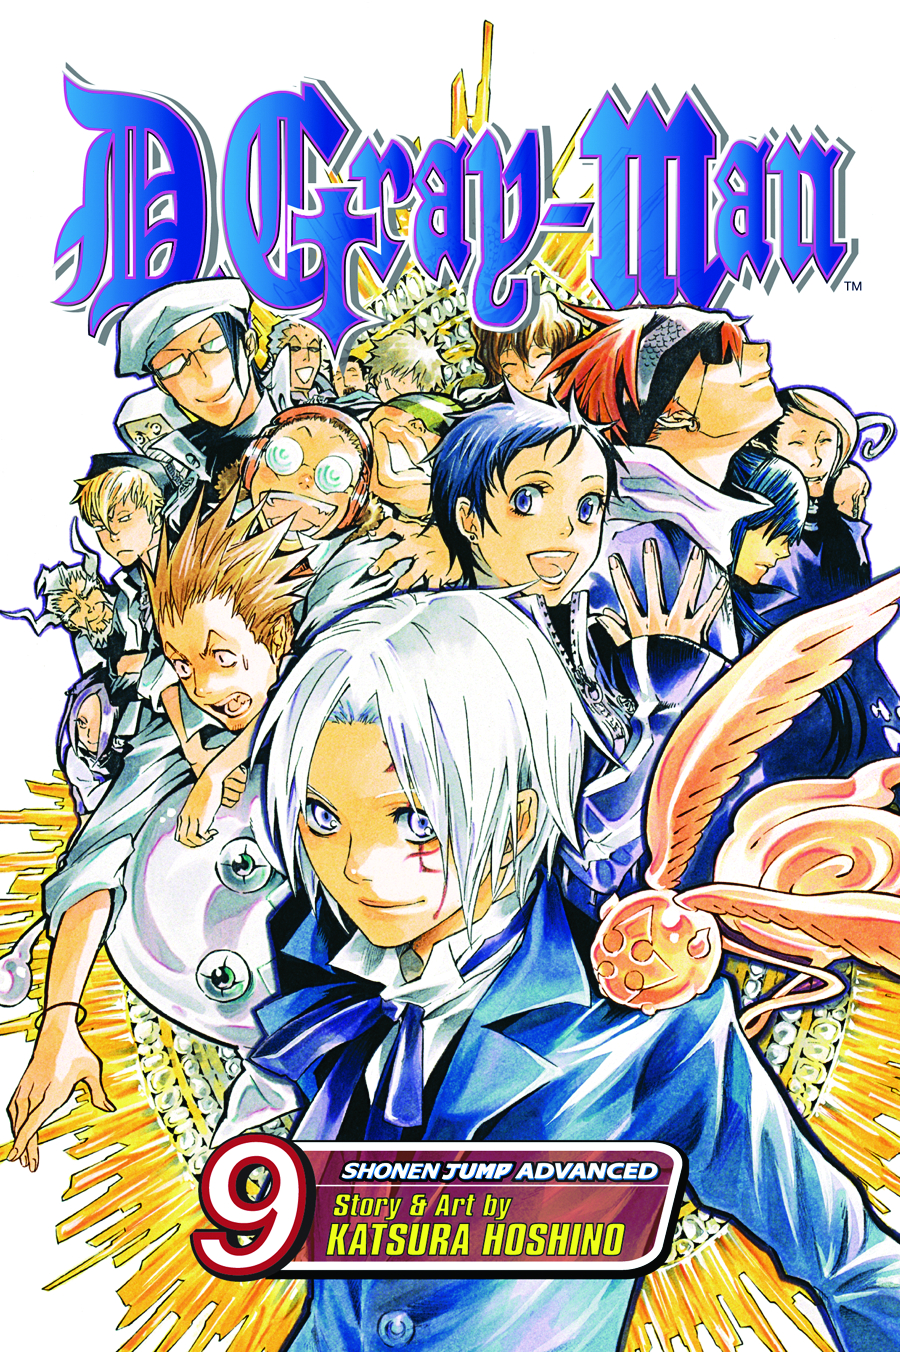 (USE MAR138323) D GRAY MAN GN VOL 09